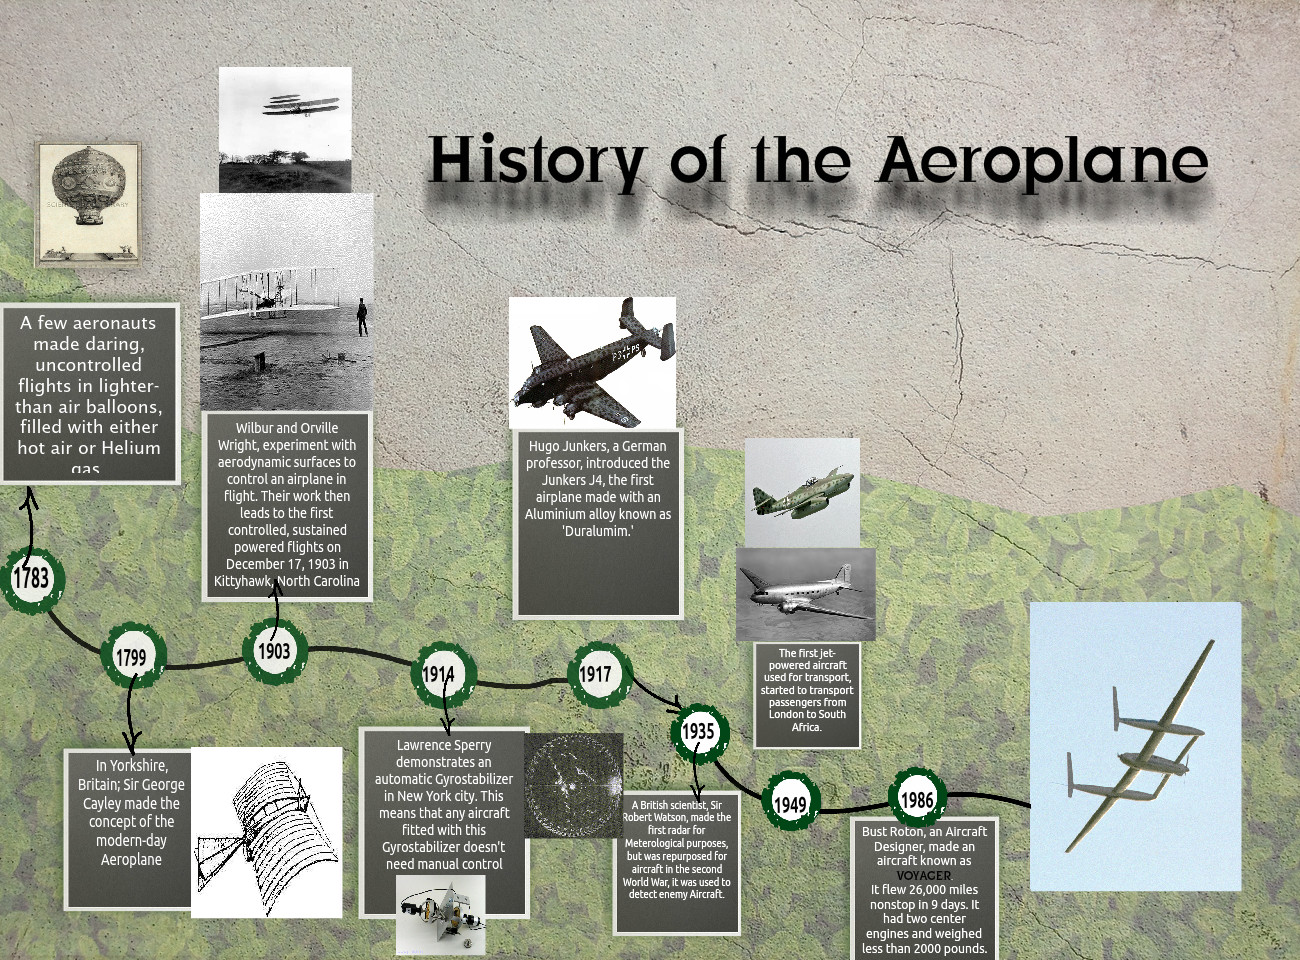 [2016] Dylan Hoffman: History of the Aeroplane